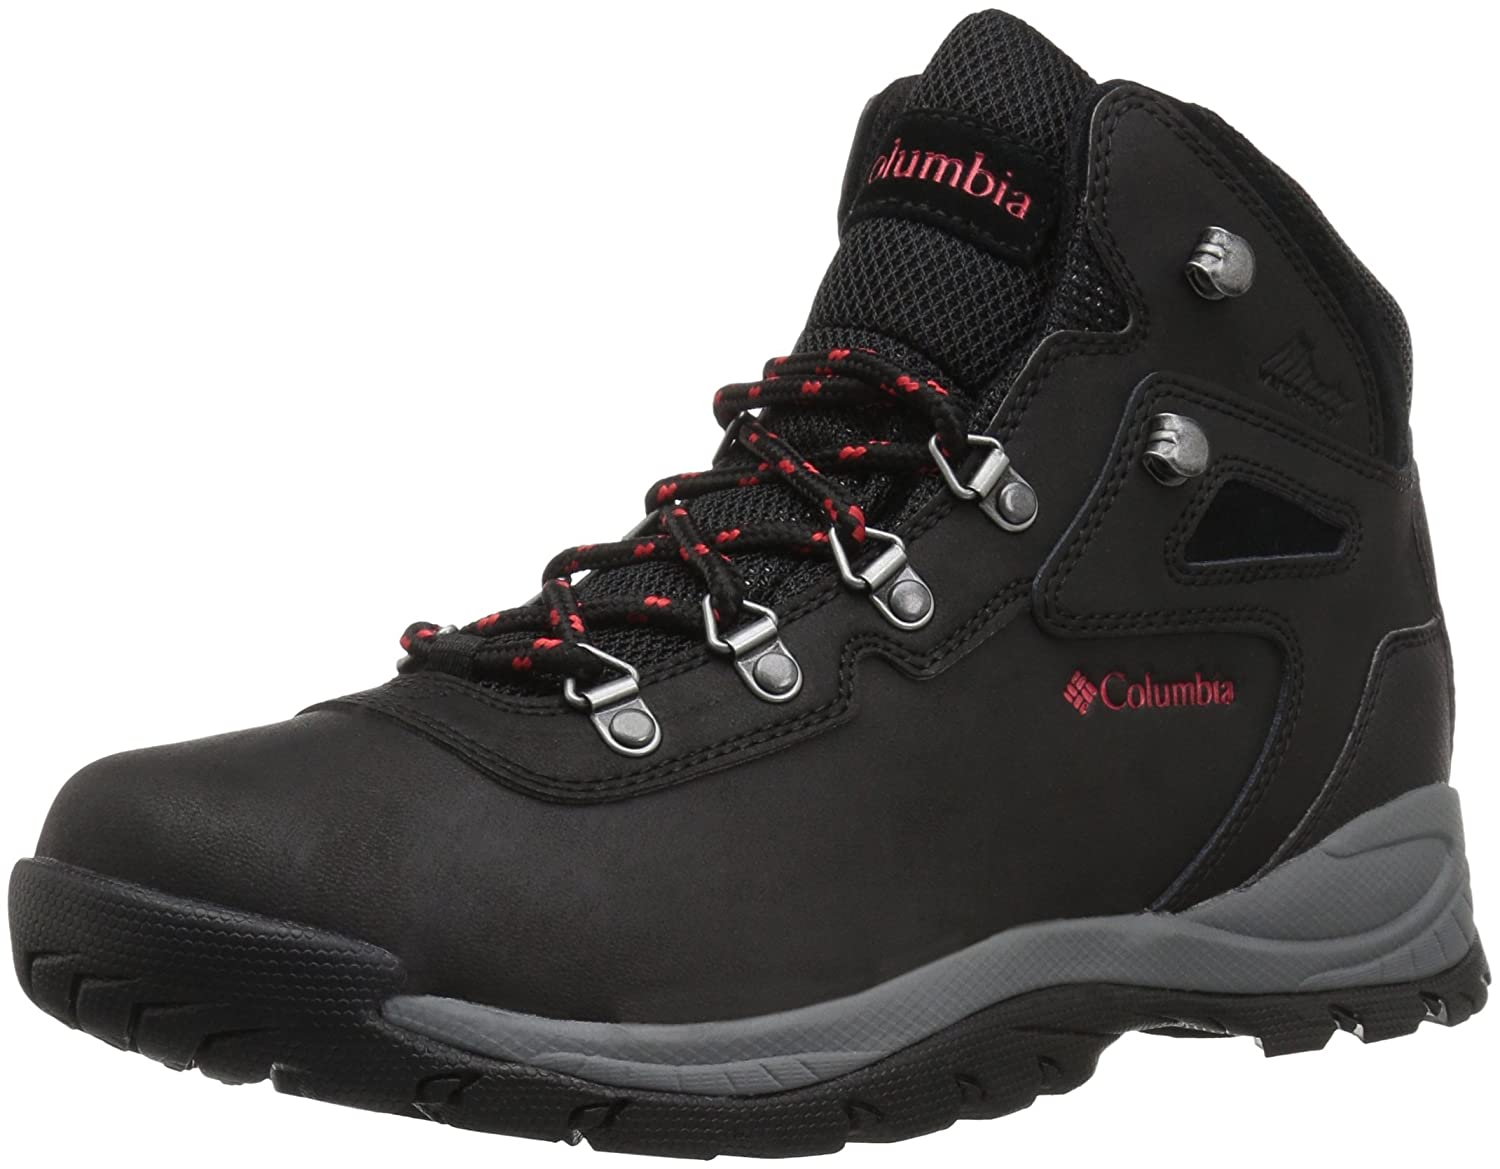 Columbia Women's Newton Ridge Plus Wide Hiking Shoe B0787KH4LF 5.5 W US|Black, Poppy Red